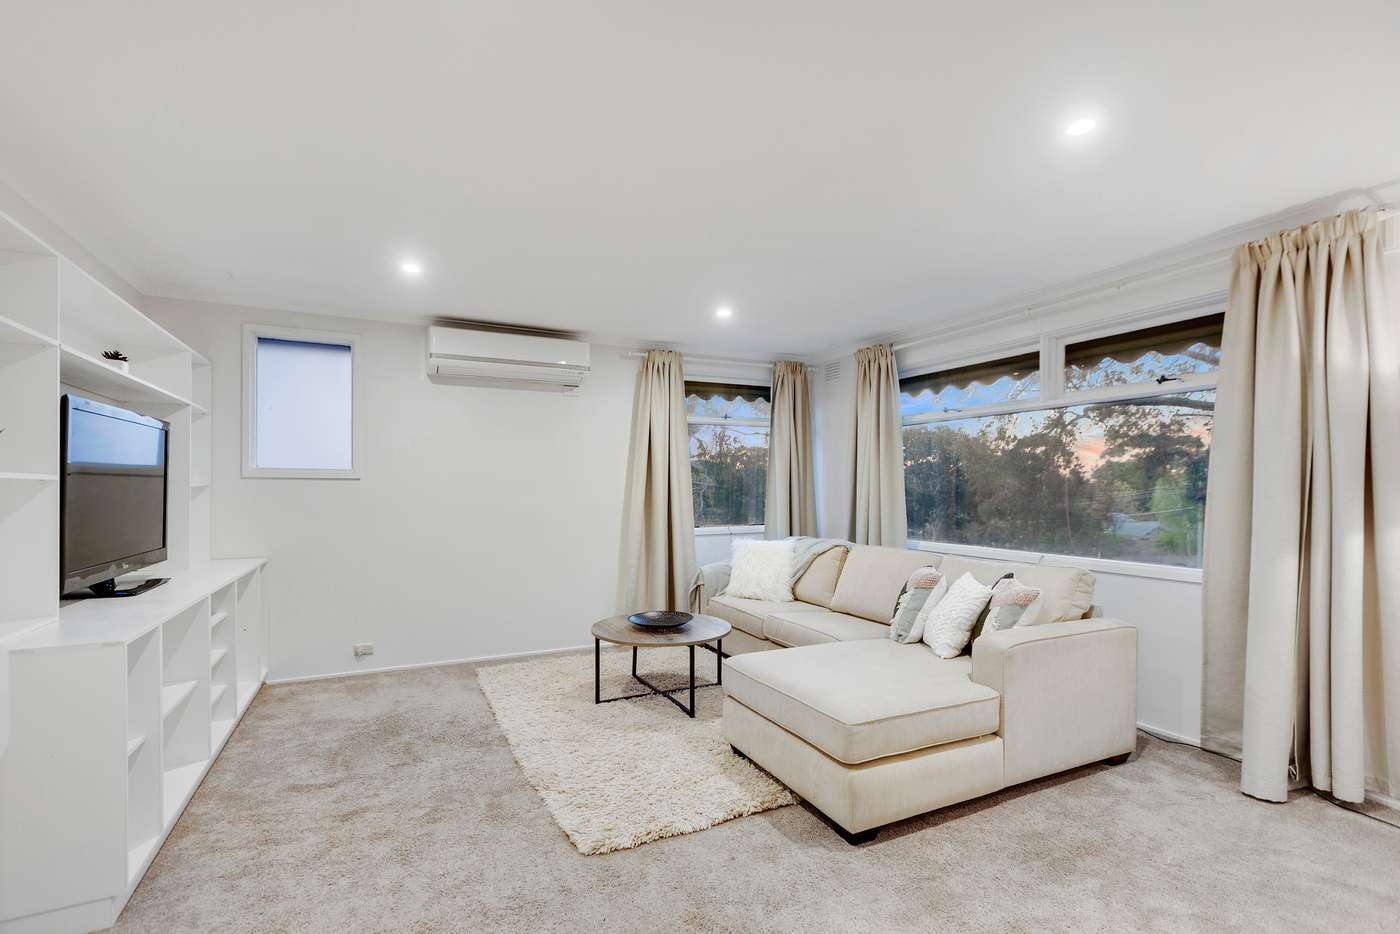 Fifth view of Homely house listing, 72 Blaxland Avenue, Frankston South VIC 3199